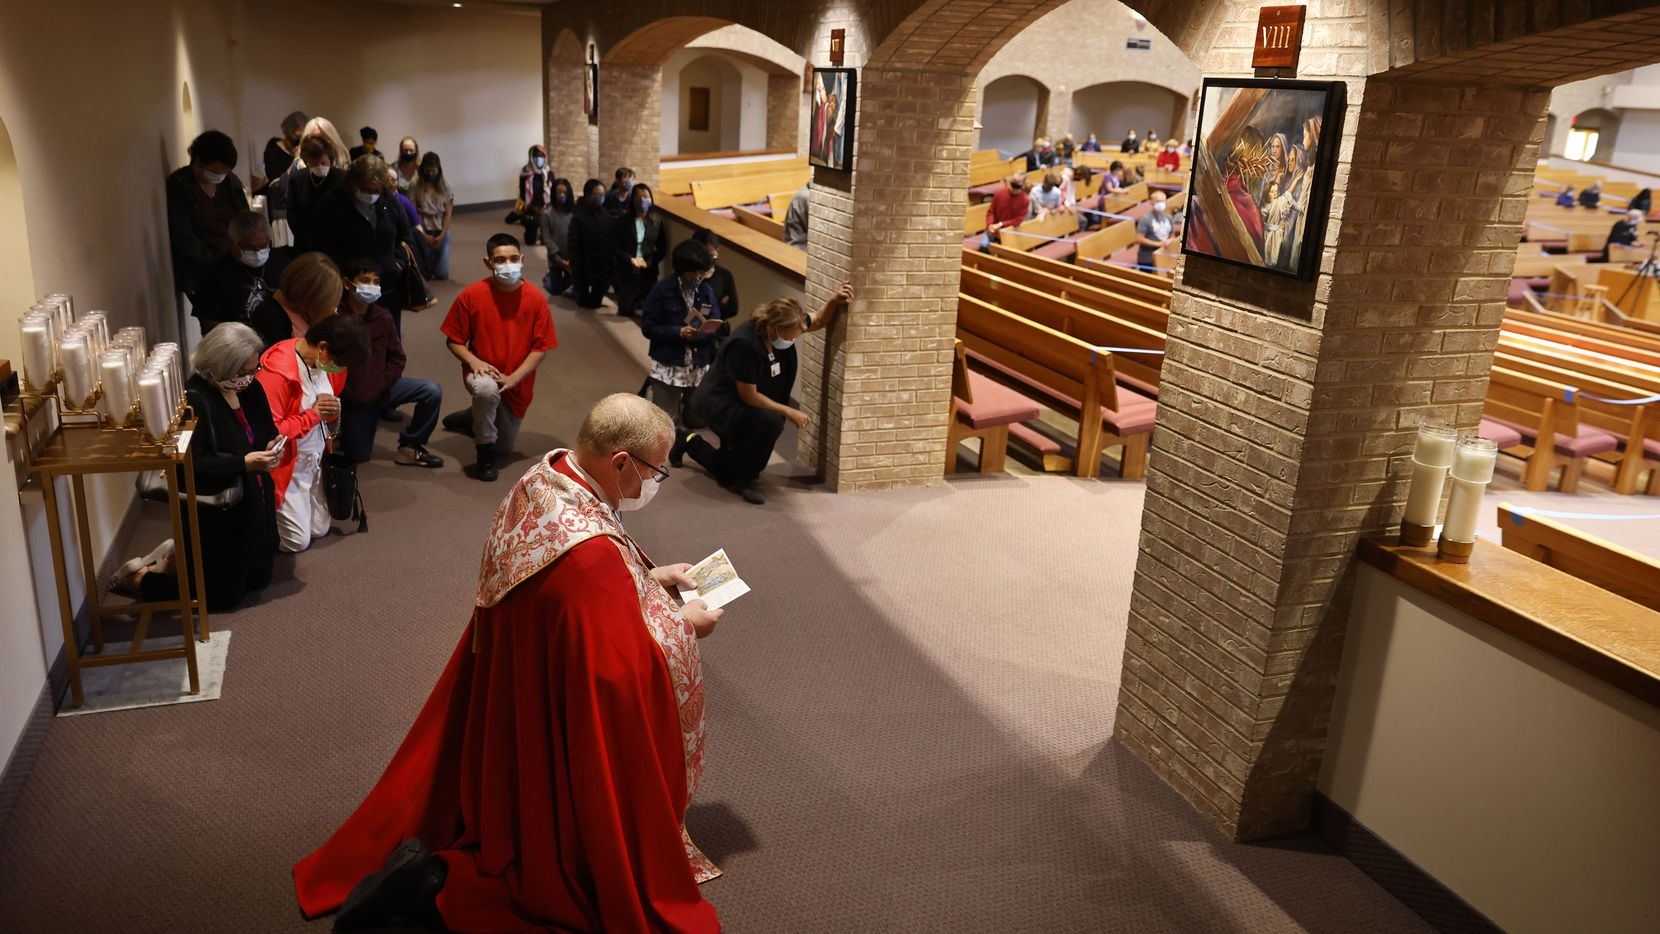 On Good Friday, Father Daniel Kelley kneels before the eighth station, Jesus meets the women of Jerusalem, as he leads a spiritual pilgrimage of the Stations of the Cross at St. Joseph Roman Catholic Parish in South Arlington, April 2, 2021.